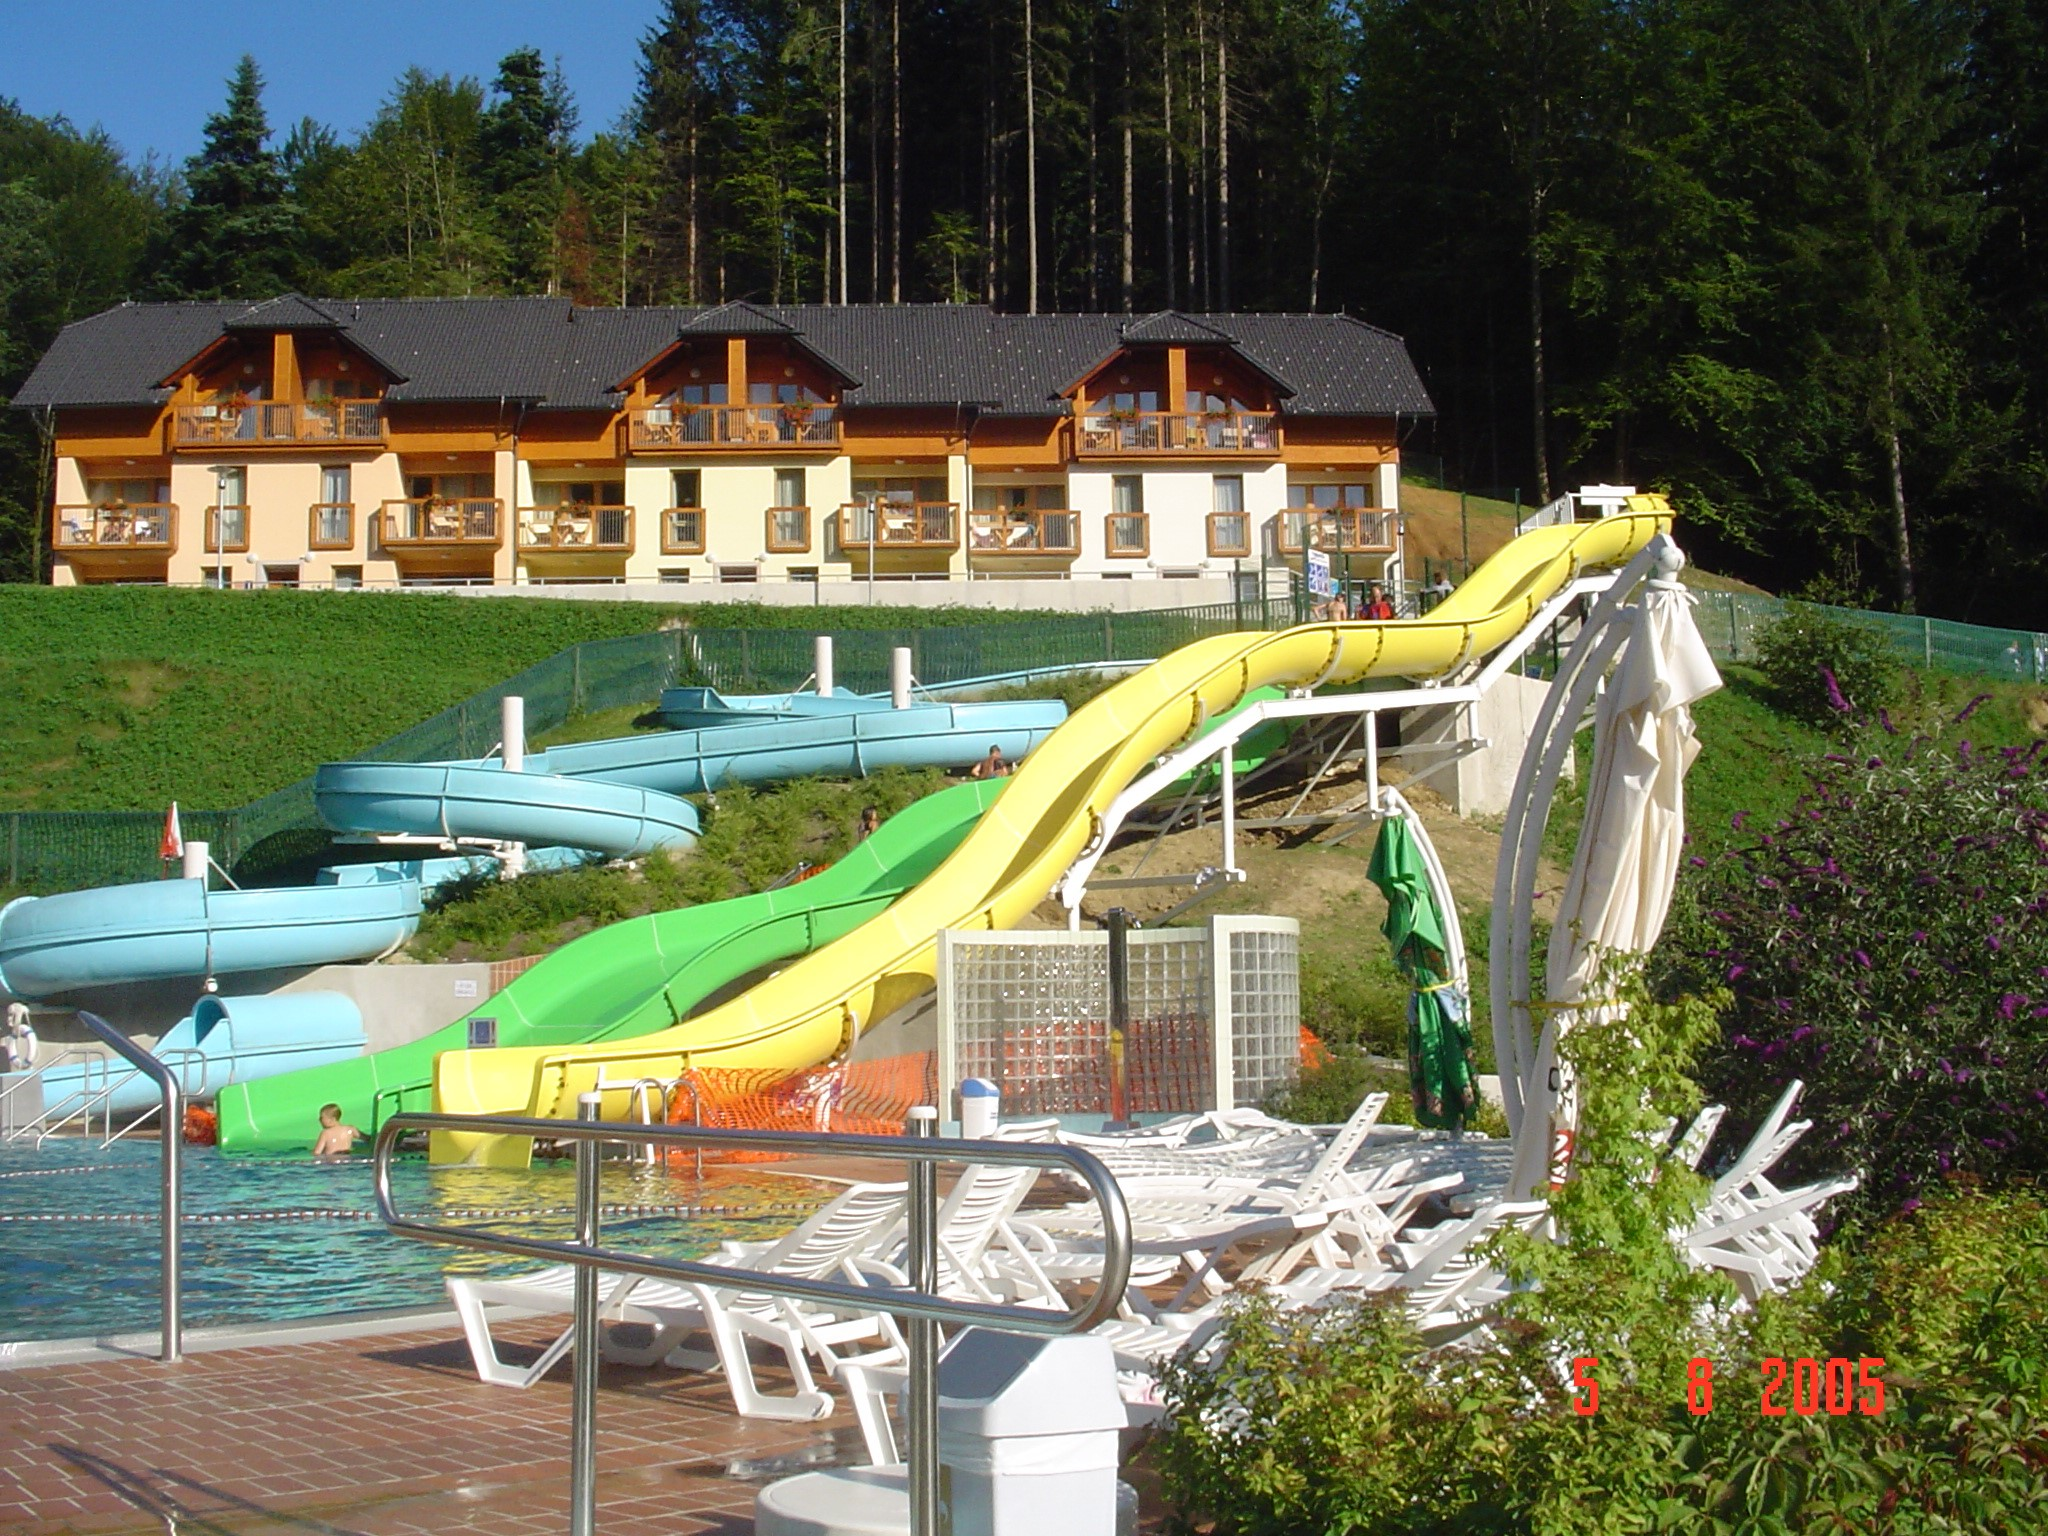 Outdoor swimming pool - slides 2